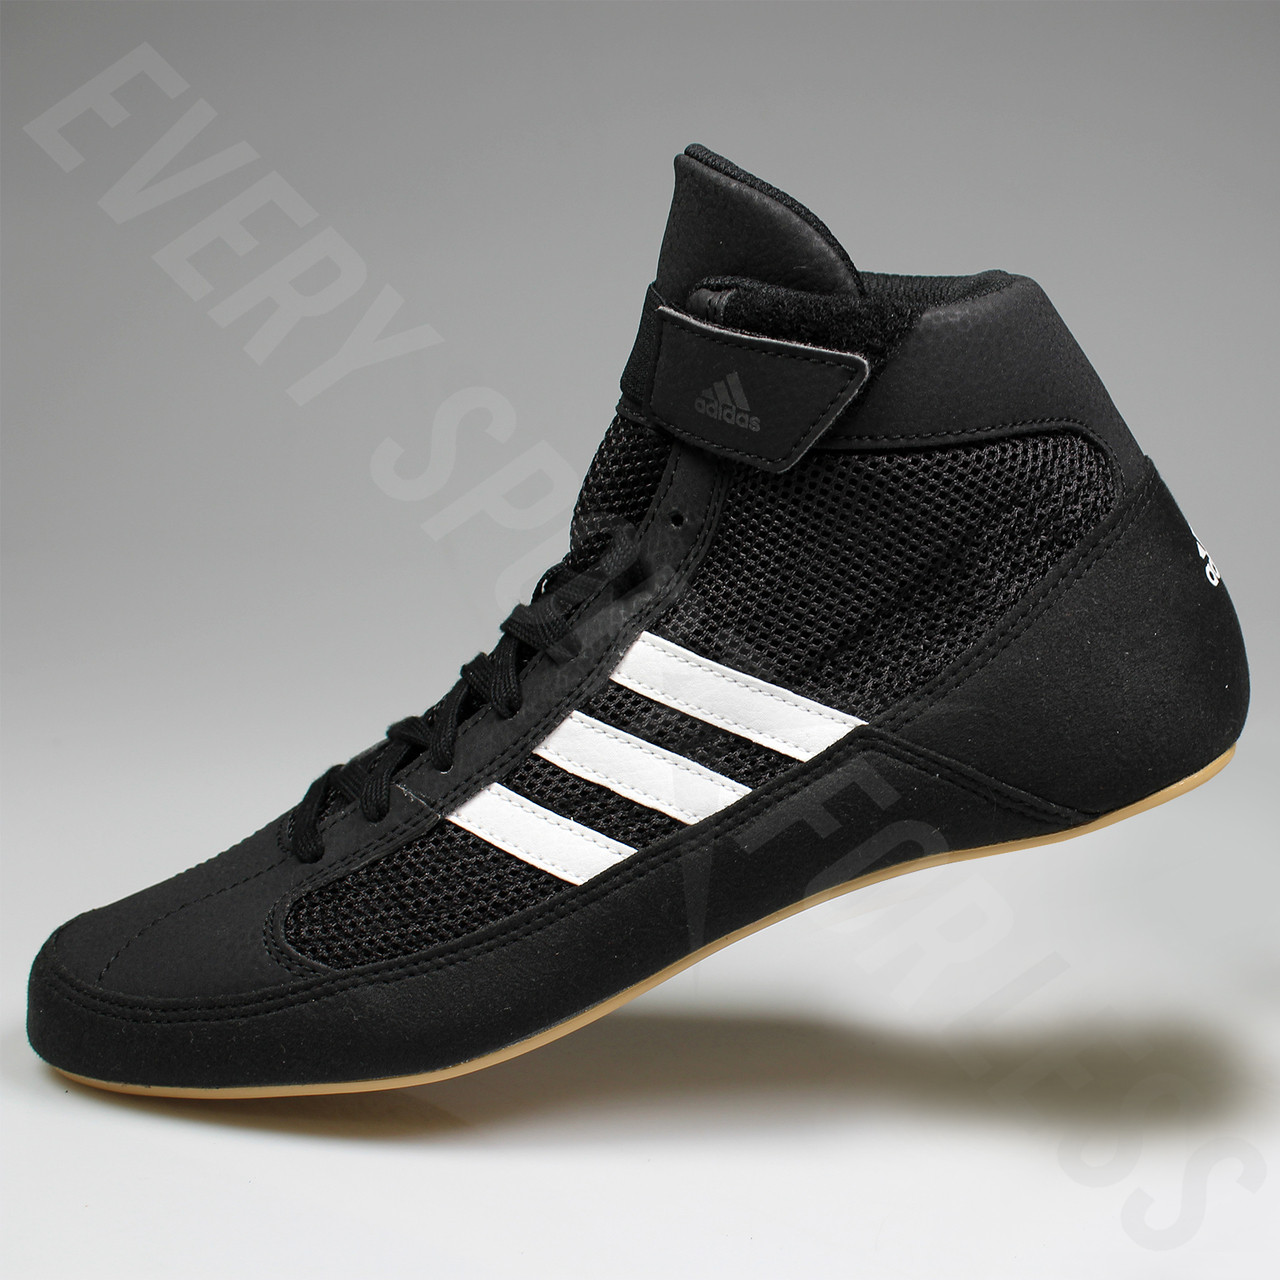 4deb6bc37a2f ... Adidas HVC 2 Mens Wrestling Shoes AQ3325 - Black   White ...